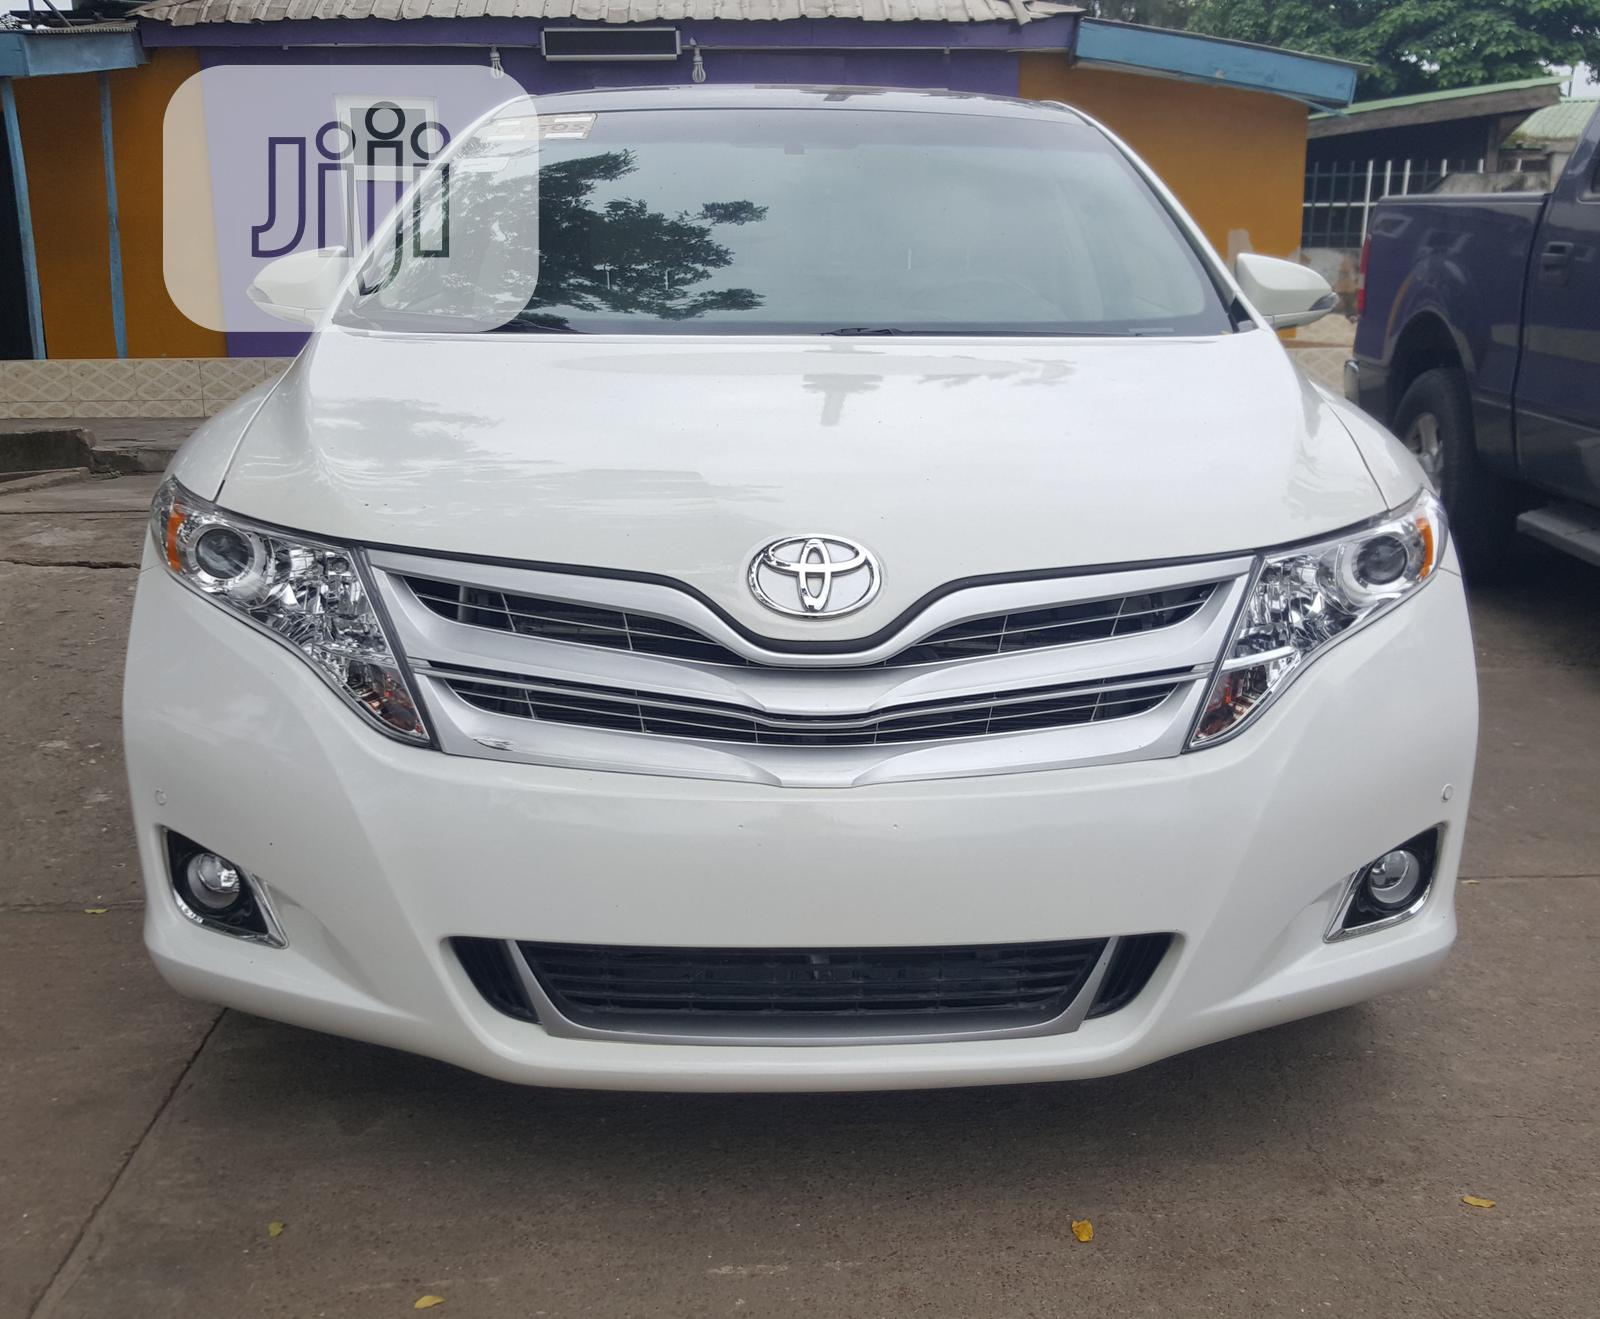 Toyota Venza 2014 White In Lagos Island Cars The Merry Life Jiji Ng For Sale In Lagos Island Buy Cars From The Merry Life On Jiji Ng